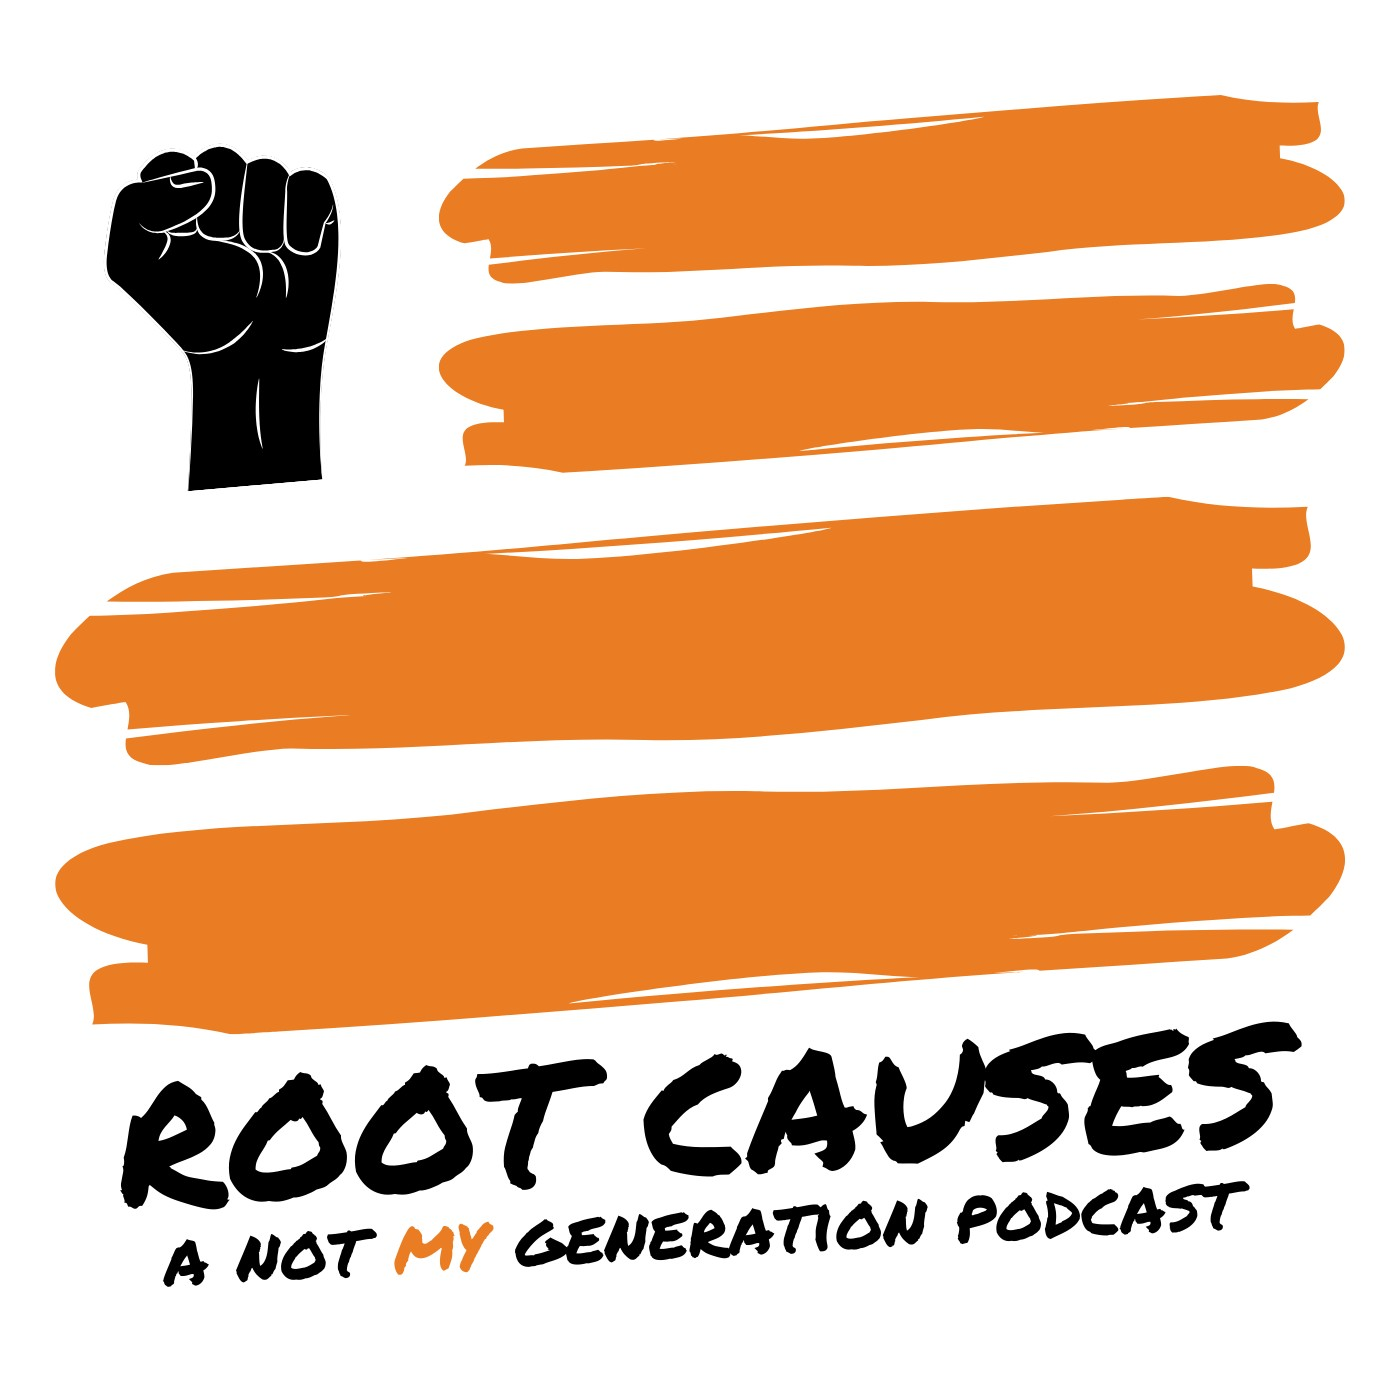 Episode 9: Abolition is Gun Violence Prevention